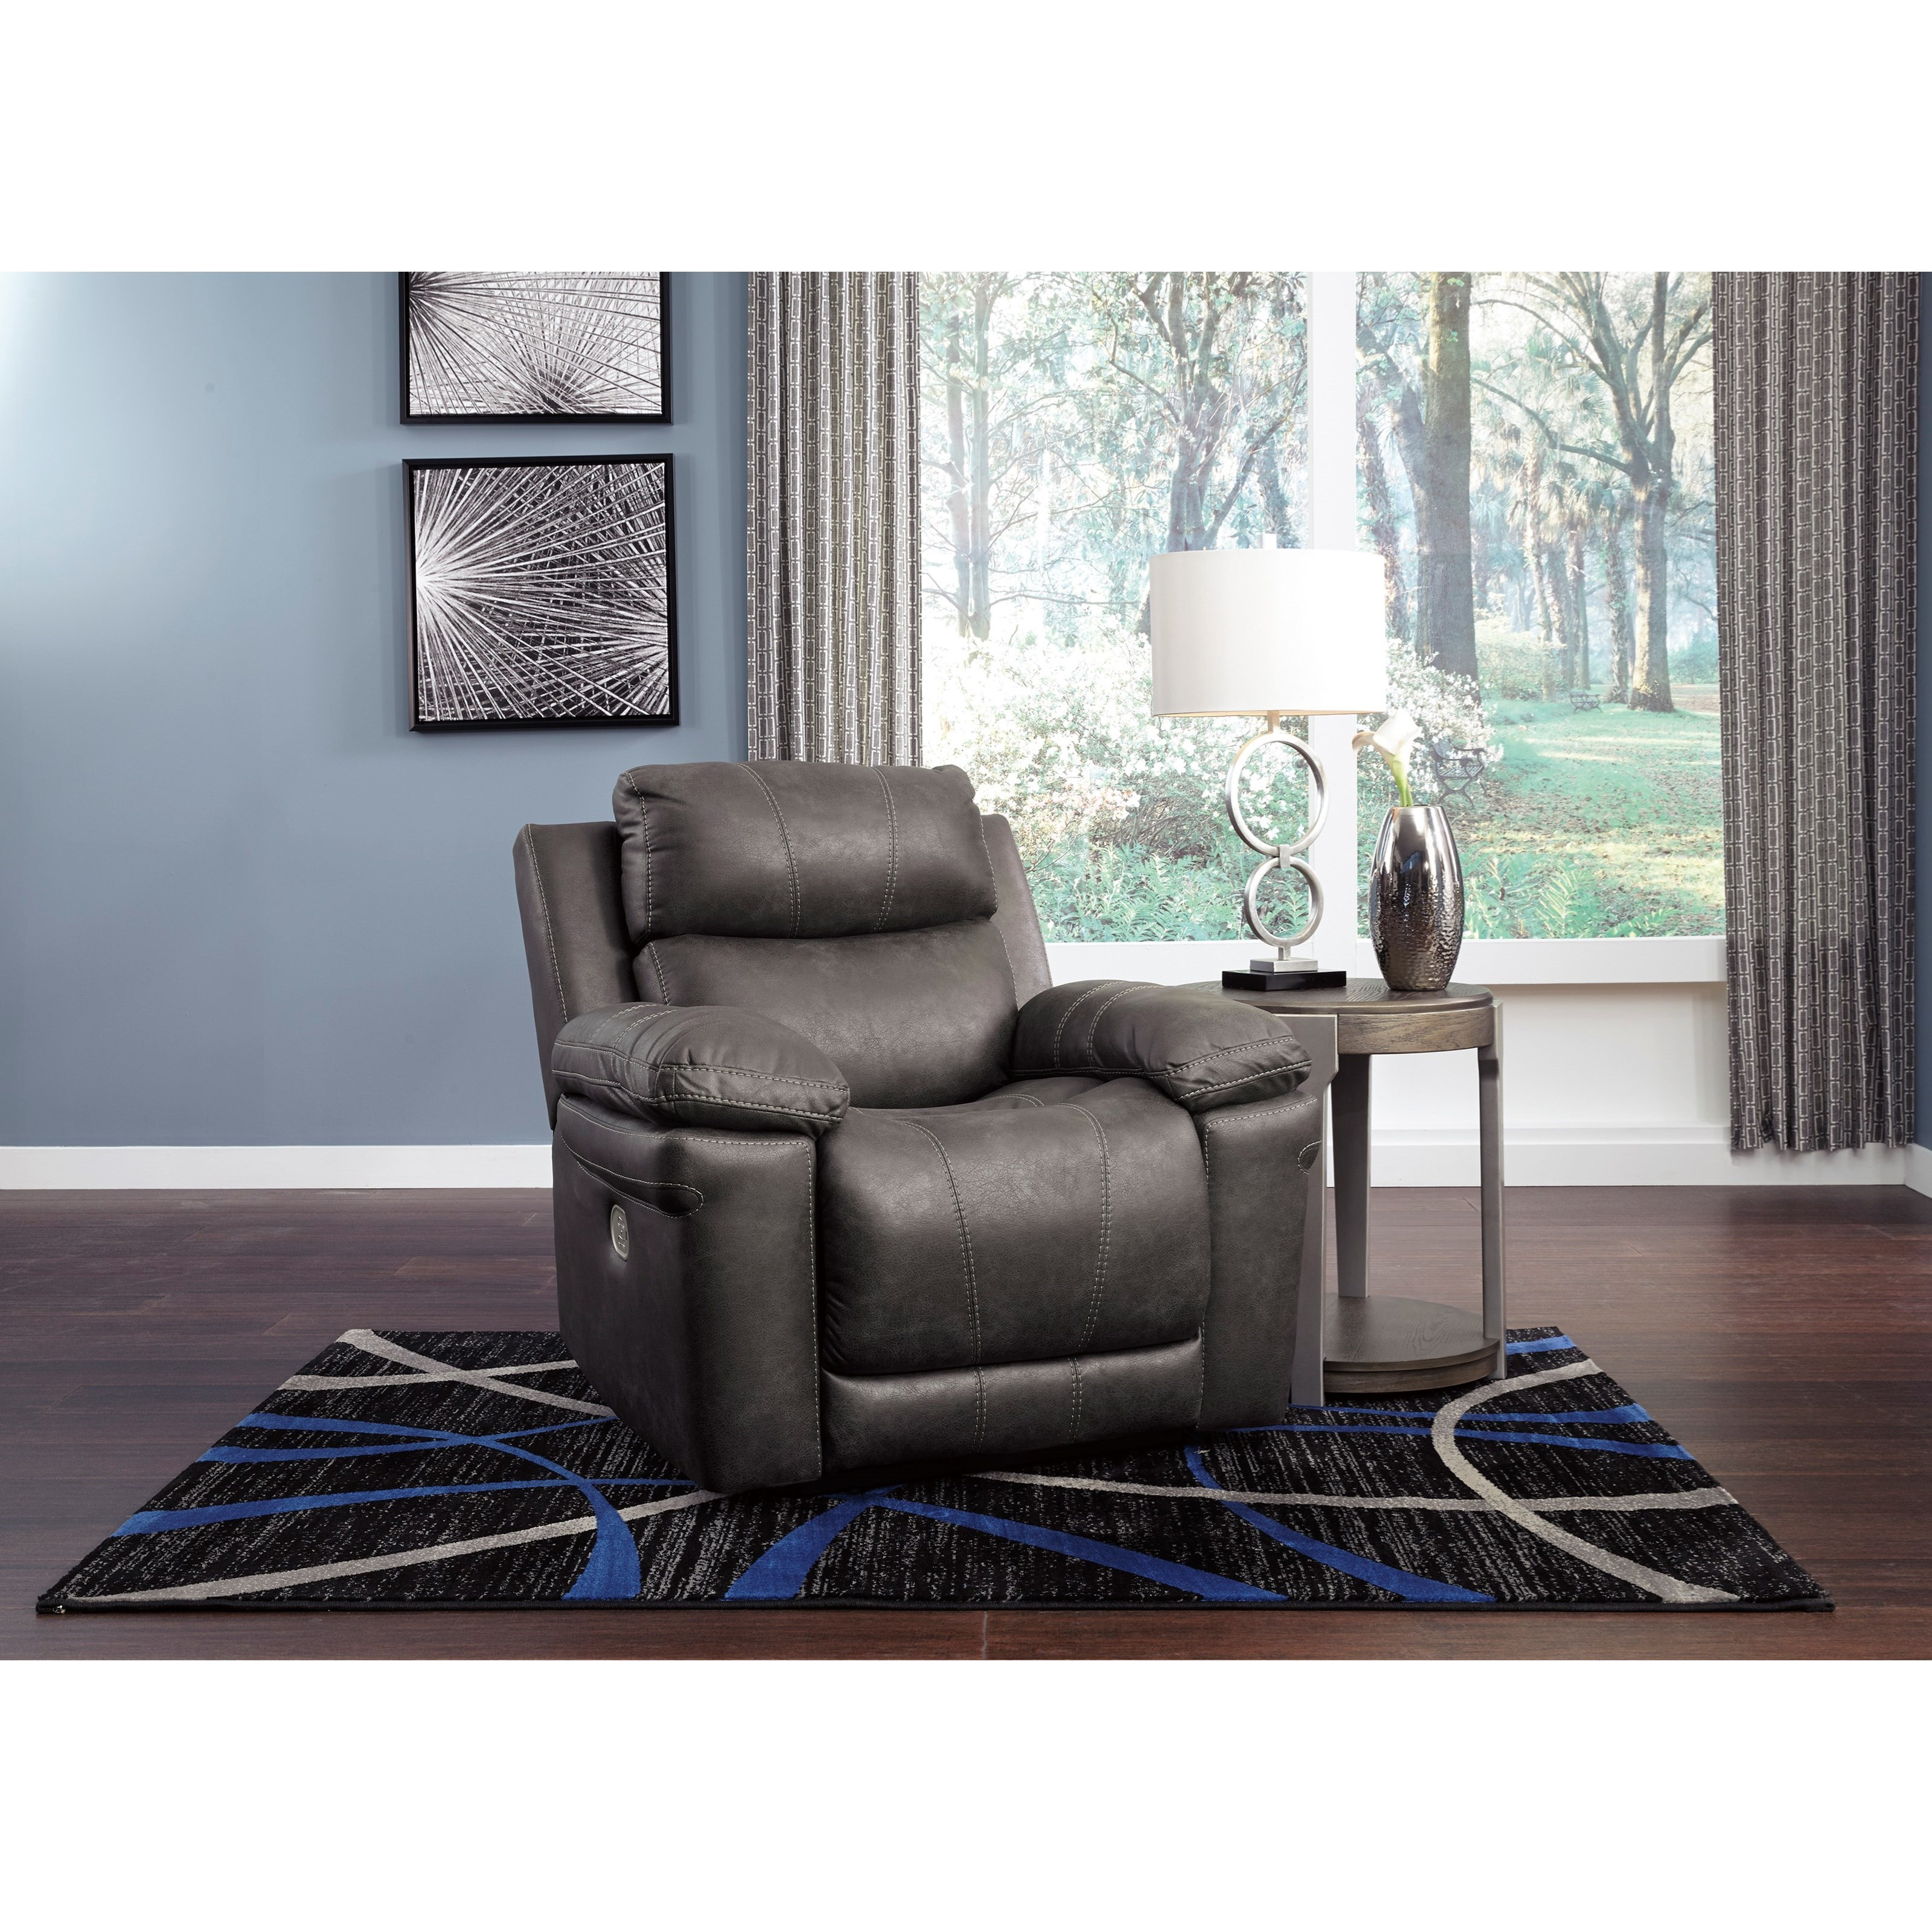 Ashley Furniture Warehouse Edison Nj: Signature Edison Casual Power Recliner With Adjustable